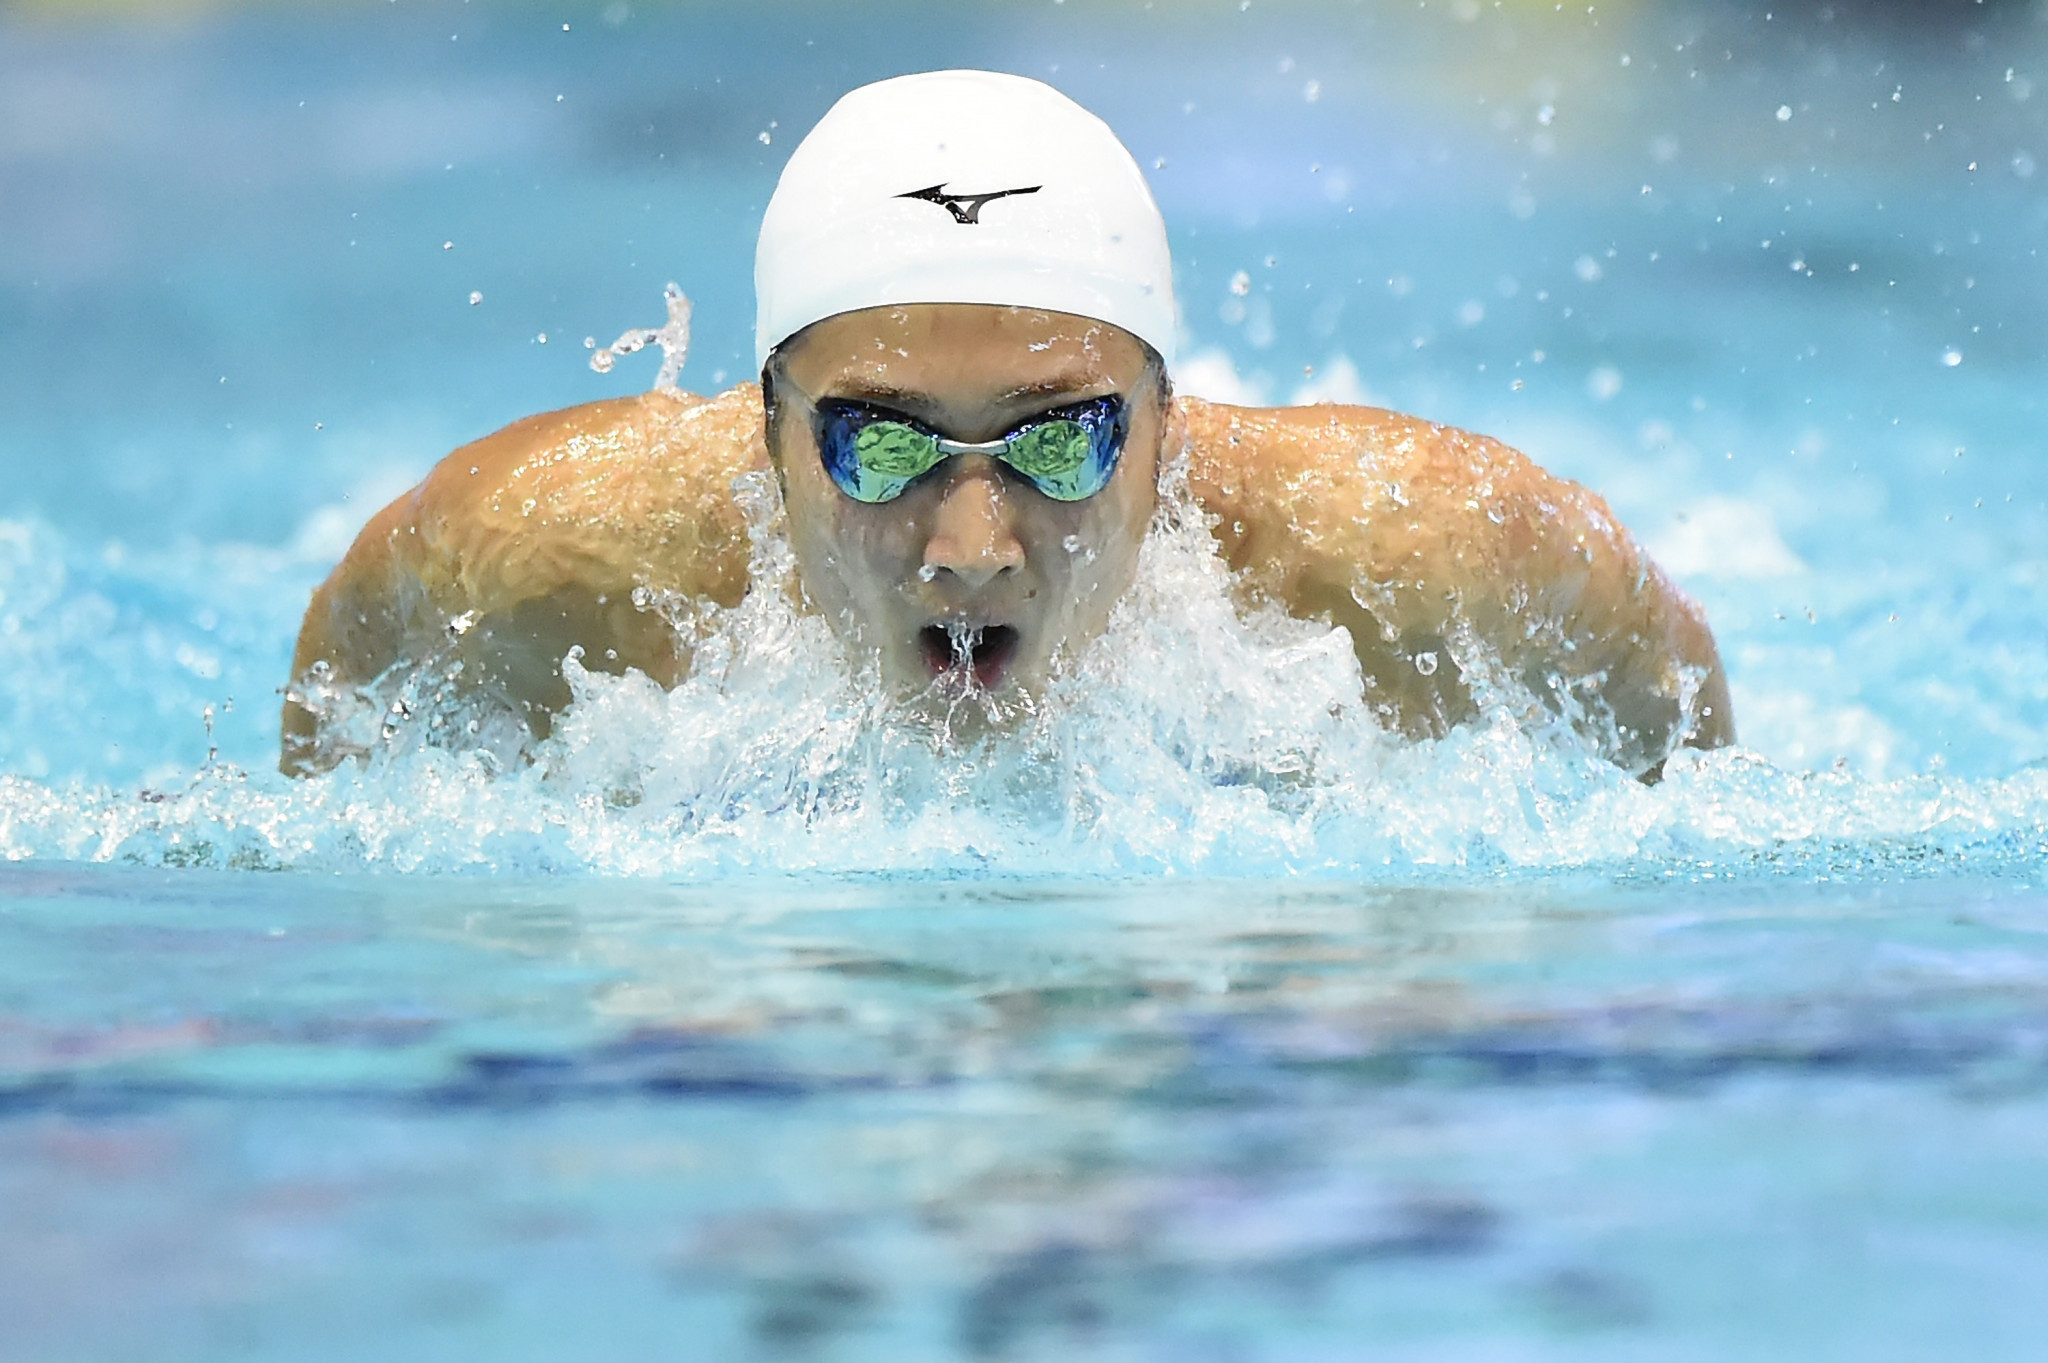 Rikako Ikee, back in the pool after leukaemia treatment, has qualified for Japan's Tokyo 2020 Olympic trials in April ©Getty Images